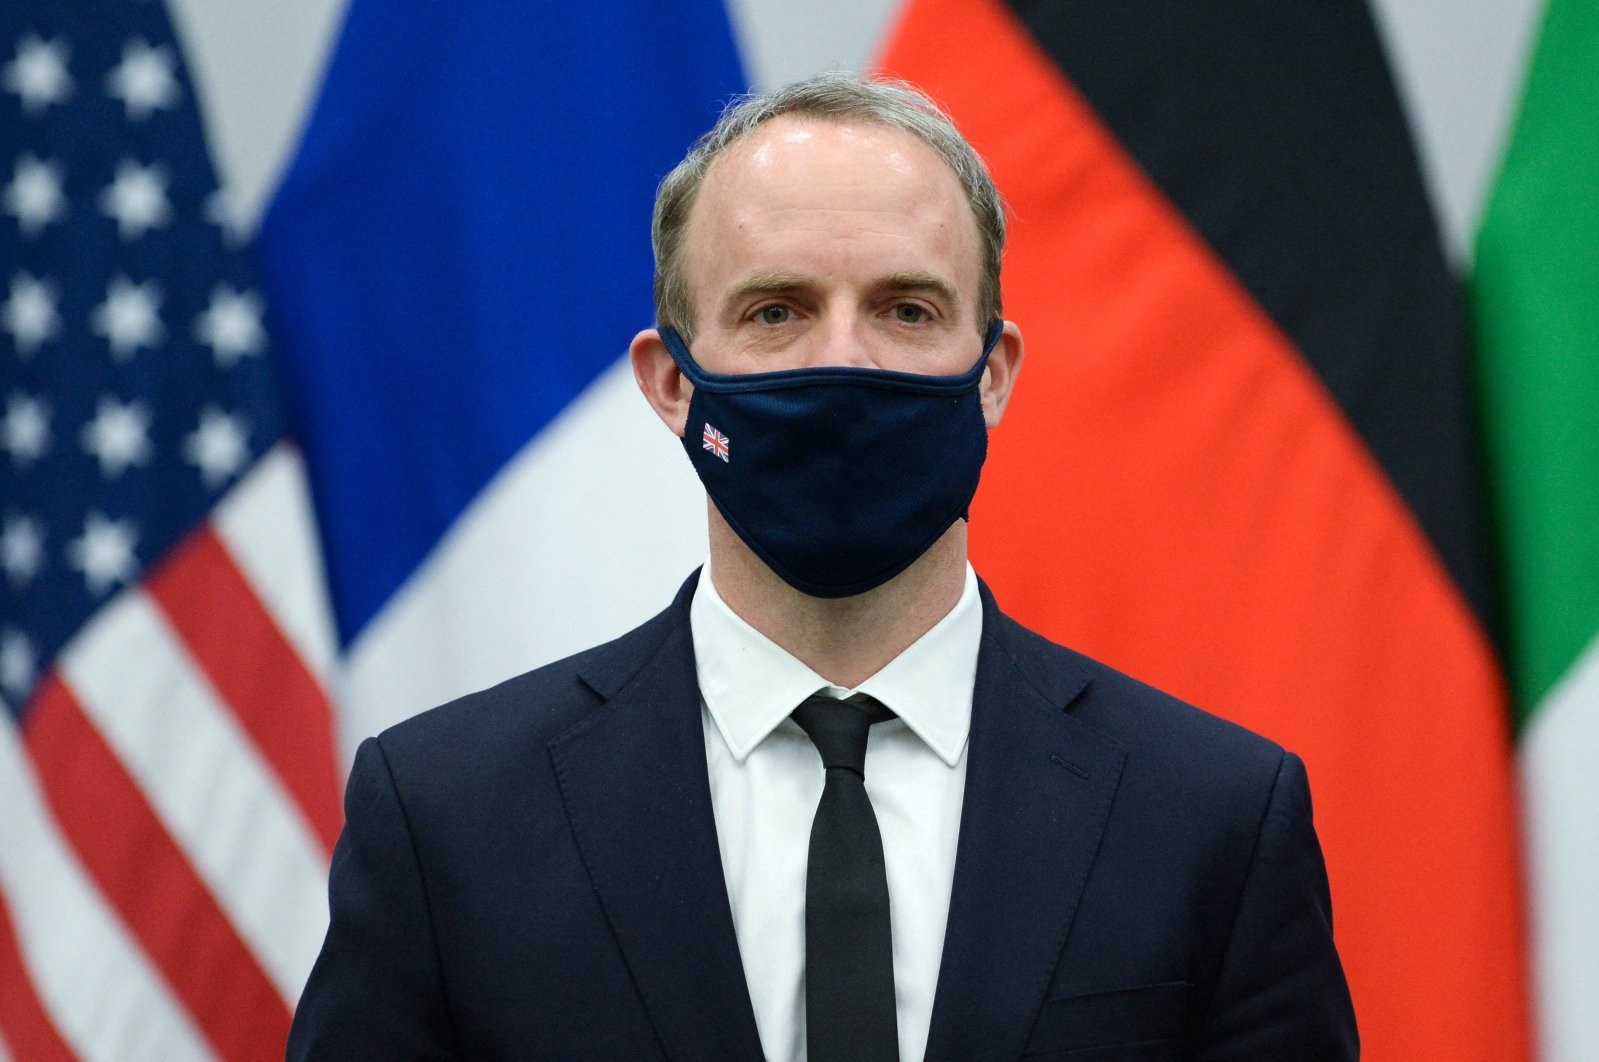 Britain's Foreign Secretary Dominic Raab wears a protective mask as he poses for a picture during a meeting at NATO's headquarters in Brussels, Belgium, April 14, 2021. (AFP Photo)